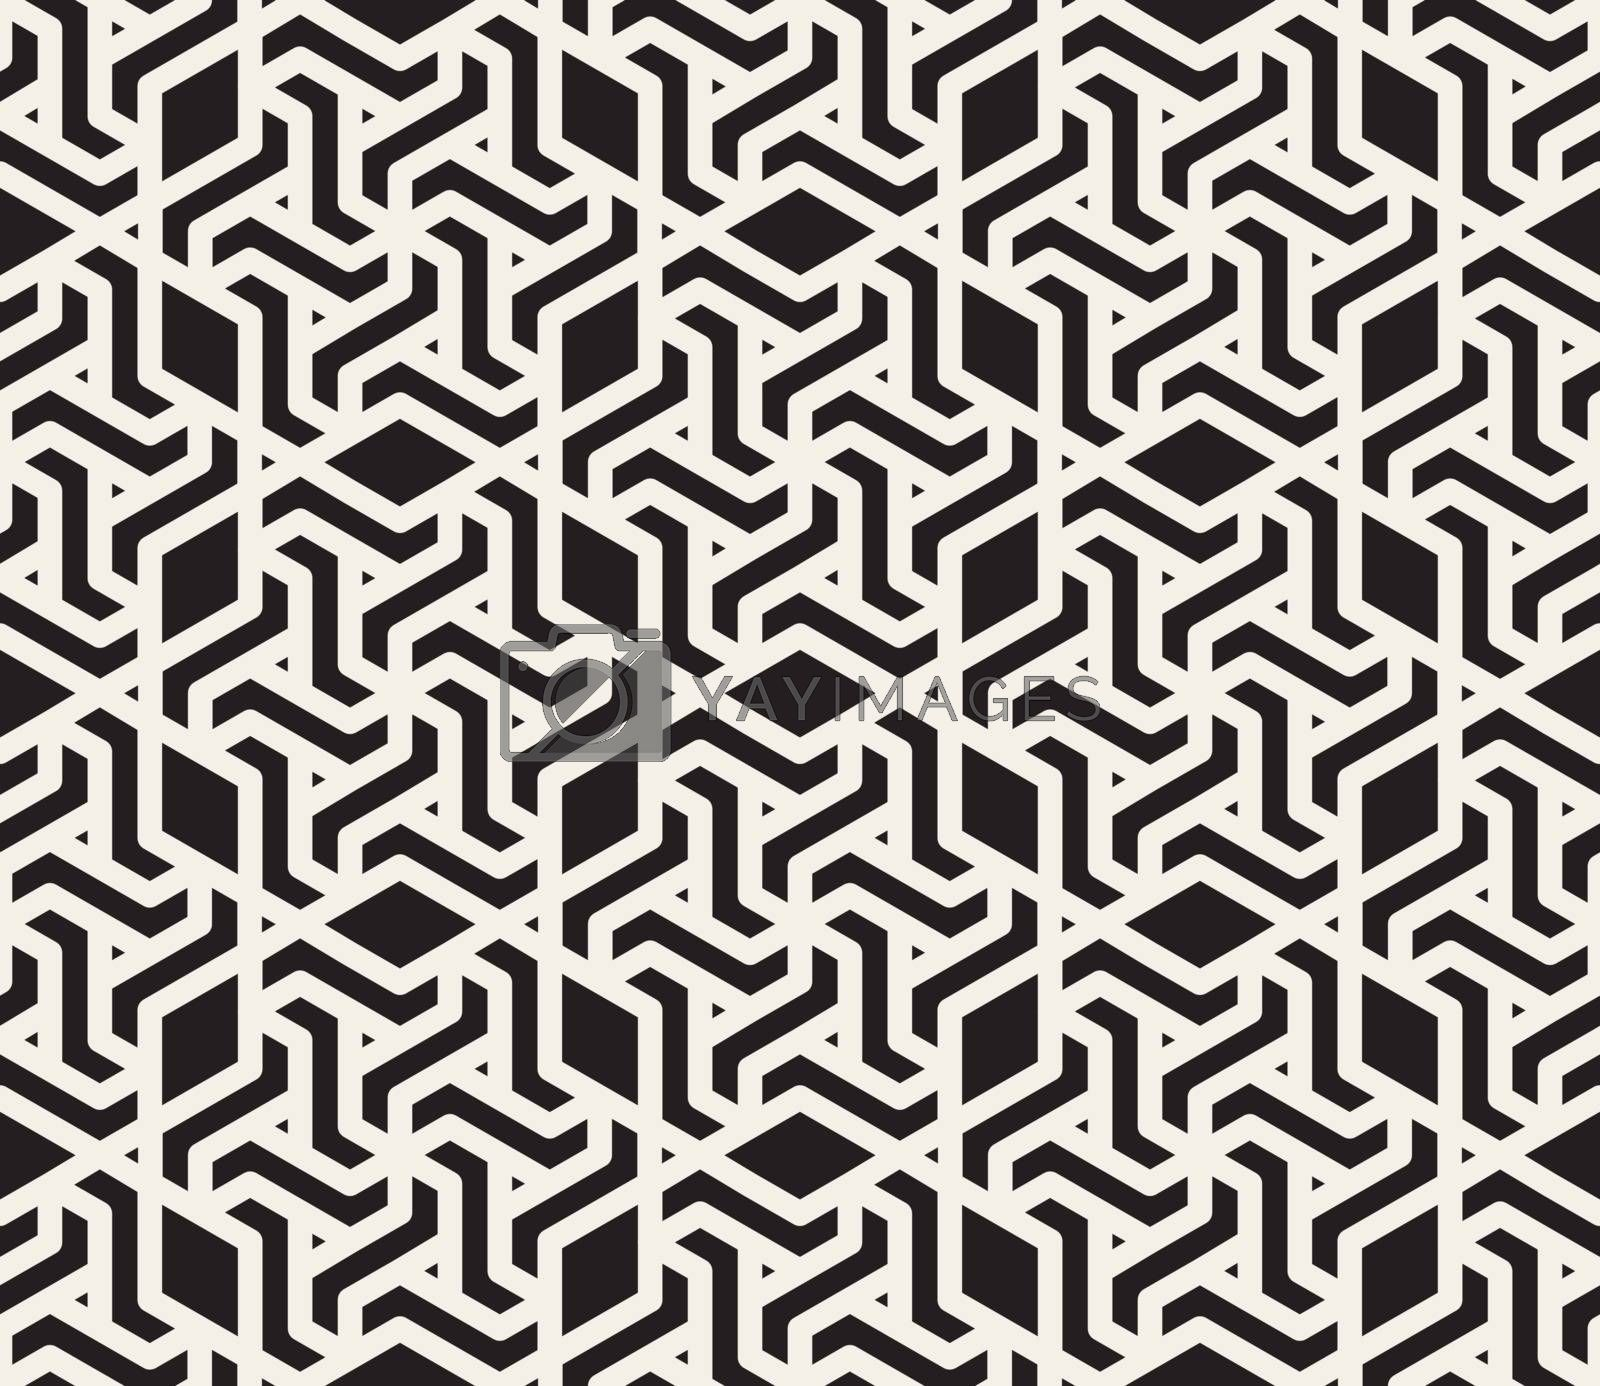 Vector Seamless Black and White Lace Pattern. Abstract Geometric Background Design